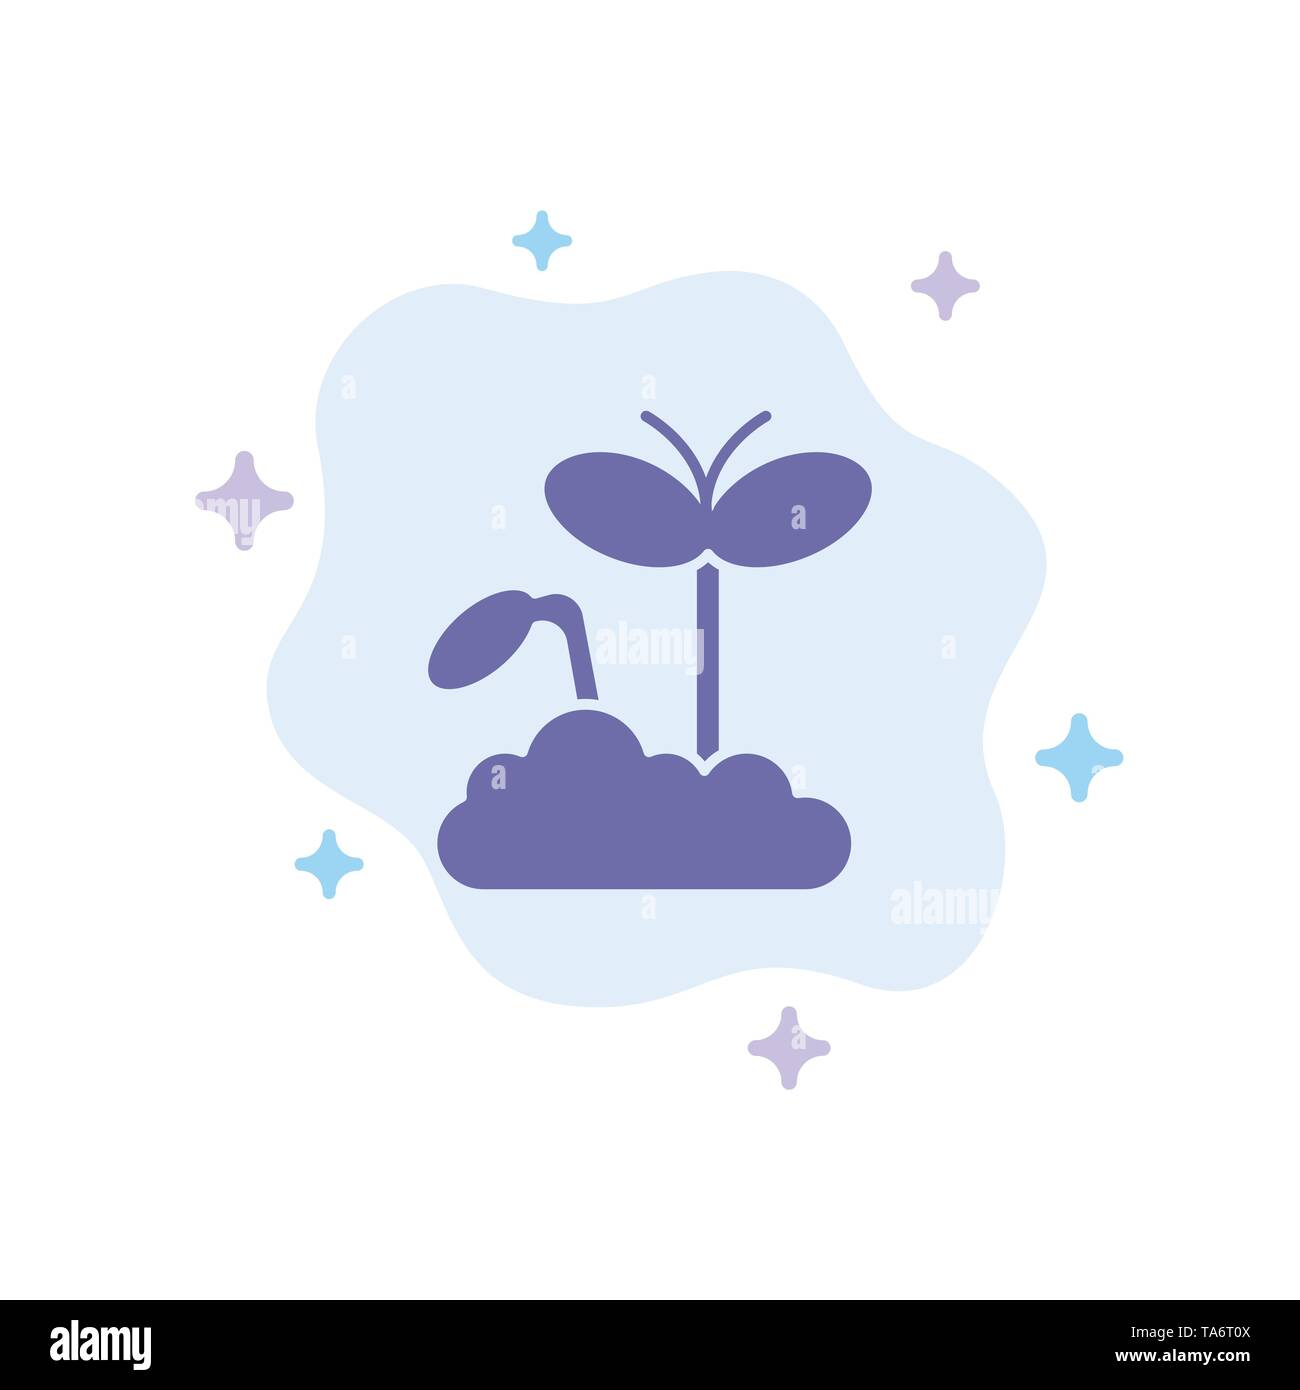 Growth, Increase, Maturity, Plant Blue Icon on Abstract Cloud Background - Stock Image